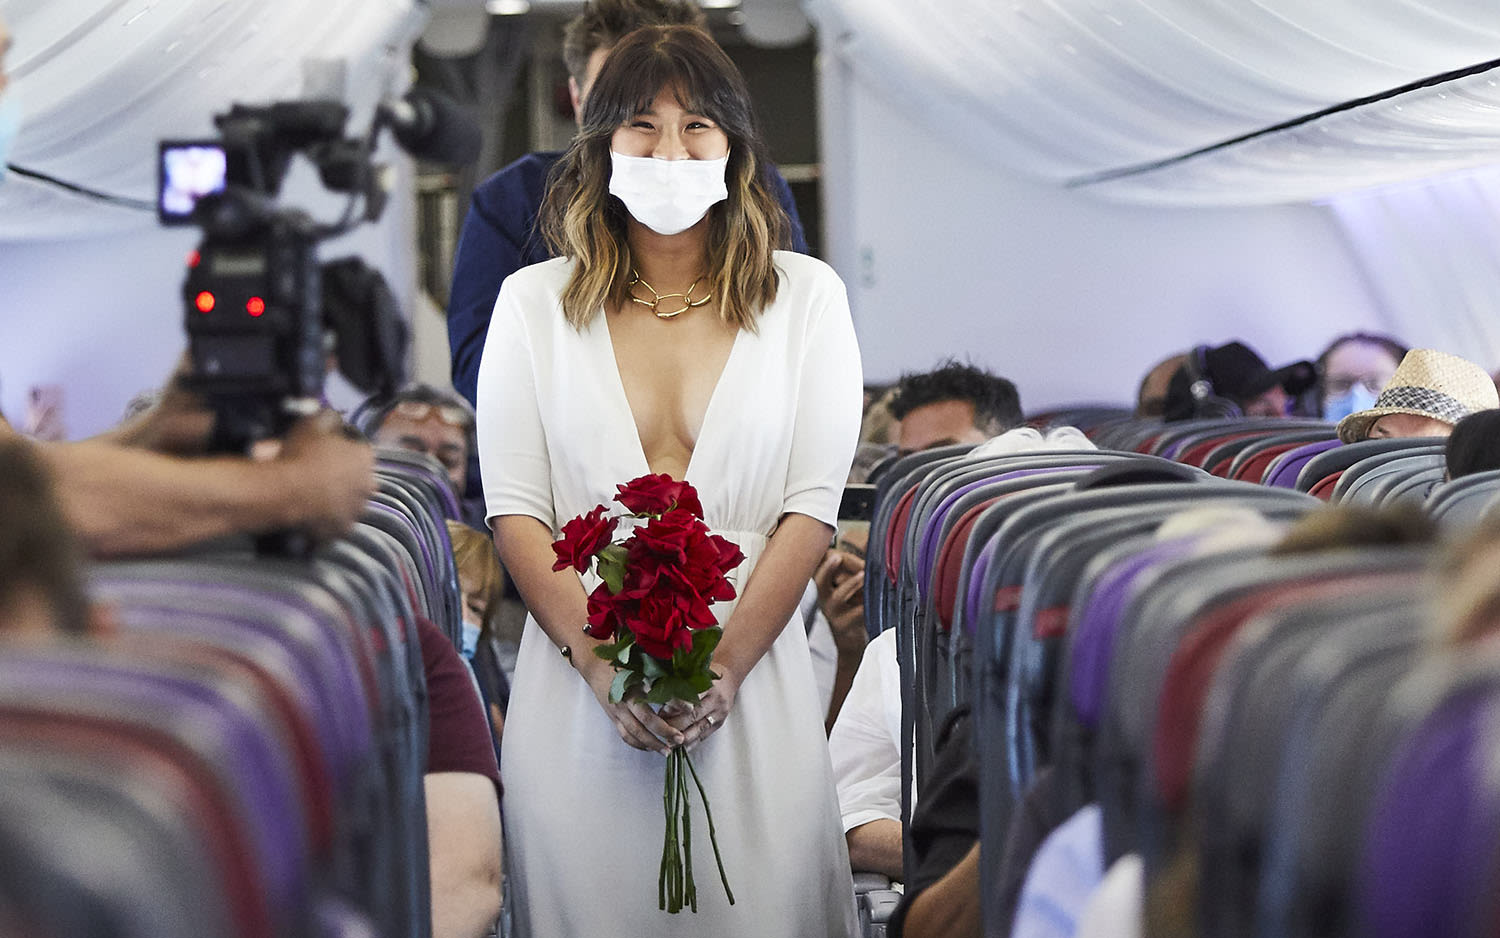 Elaine Tiong walks down the aircraft aisle wearing a white dress, holding a bunch of red roses